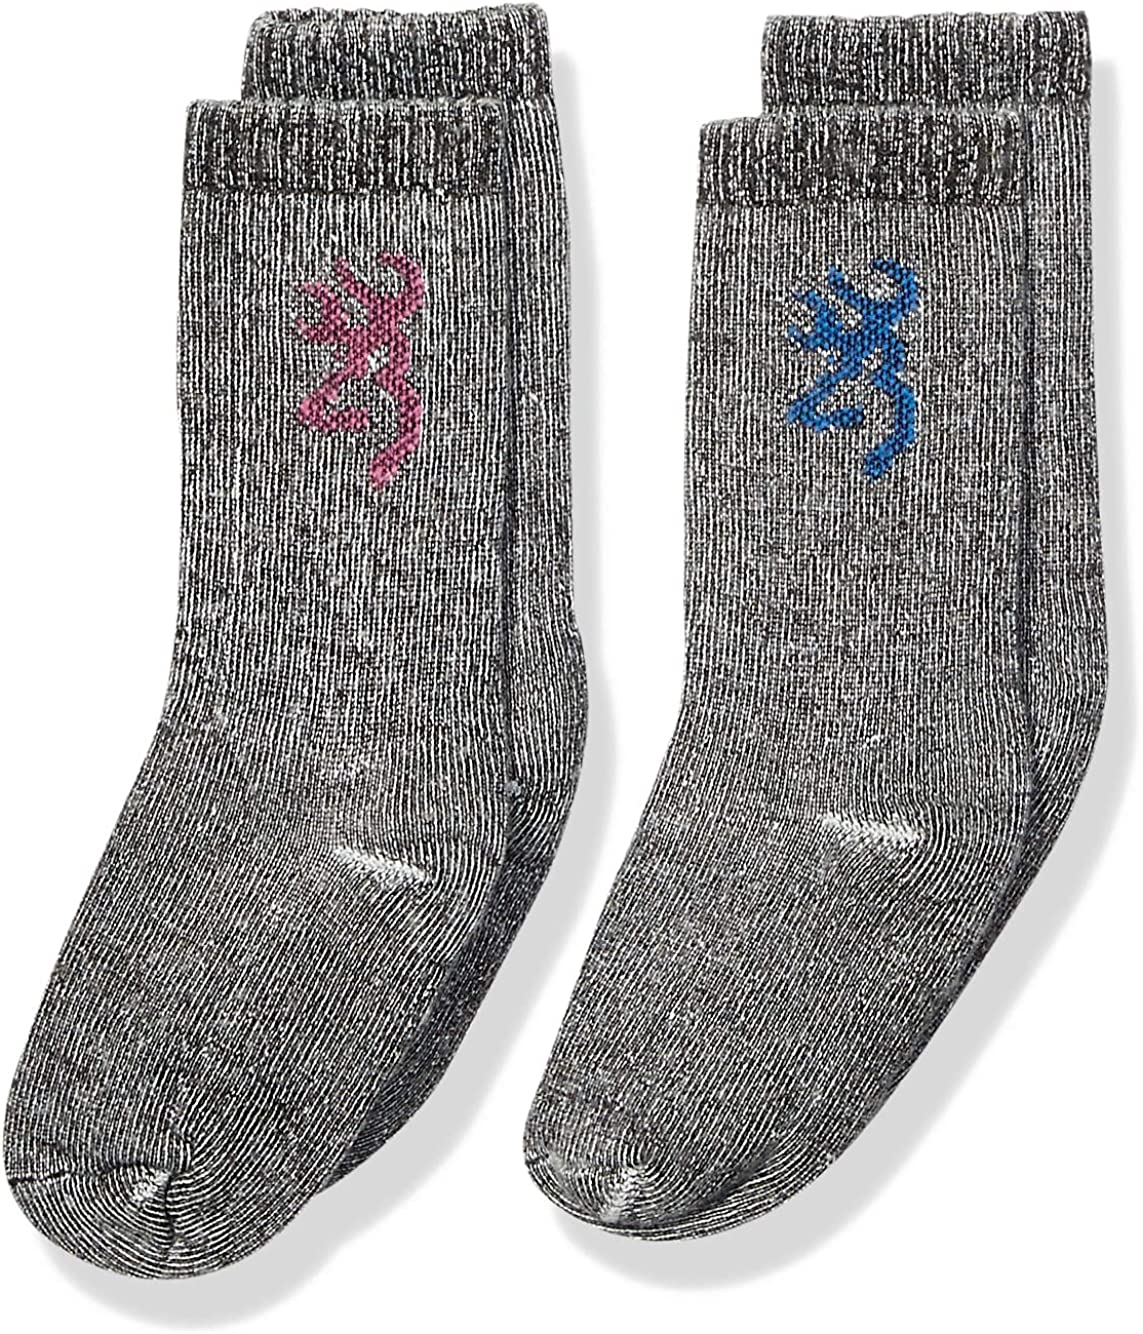 Browning Youth Everyday Wool Socks   Pink/Blue   2-Pack